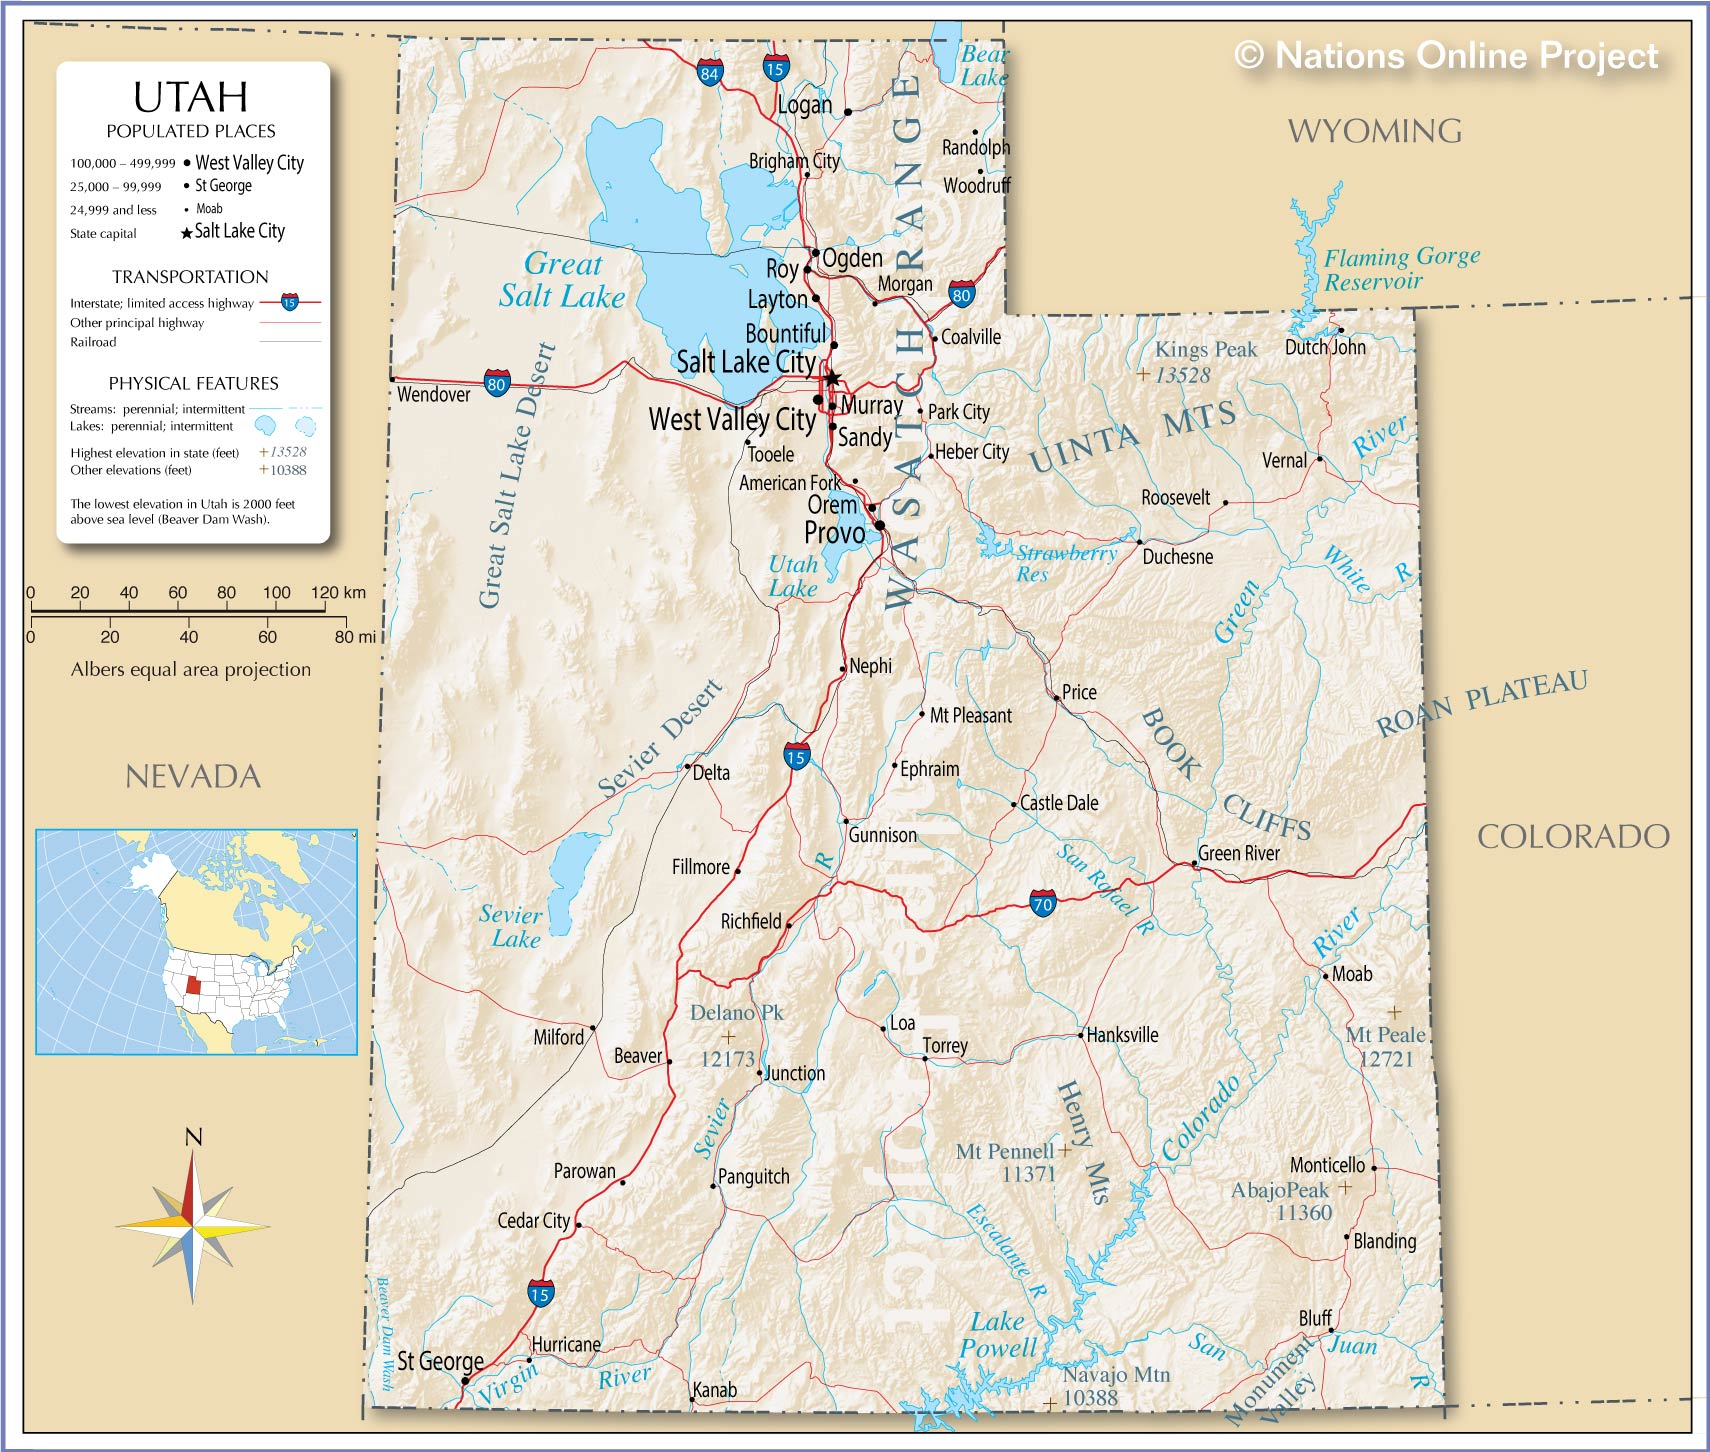 Reference Map Of Utah USA Nations Online Project - Map usa utah